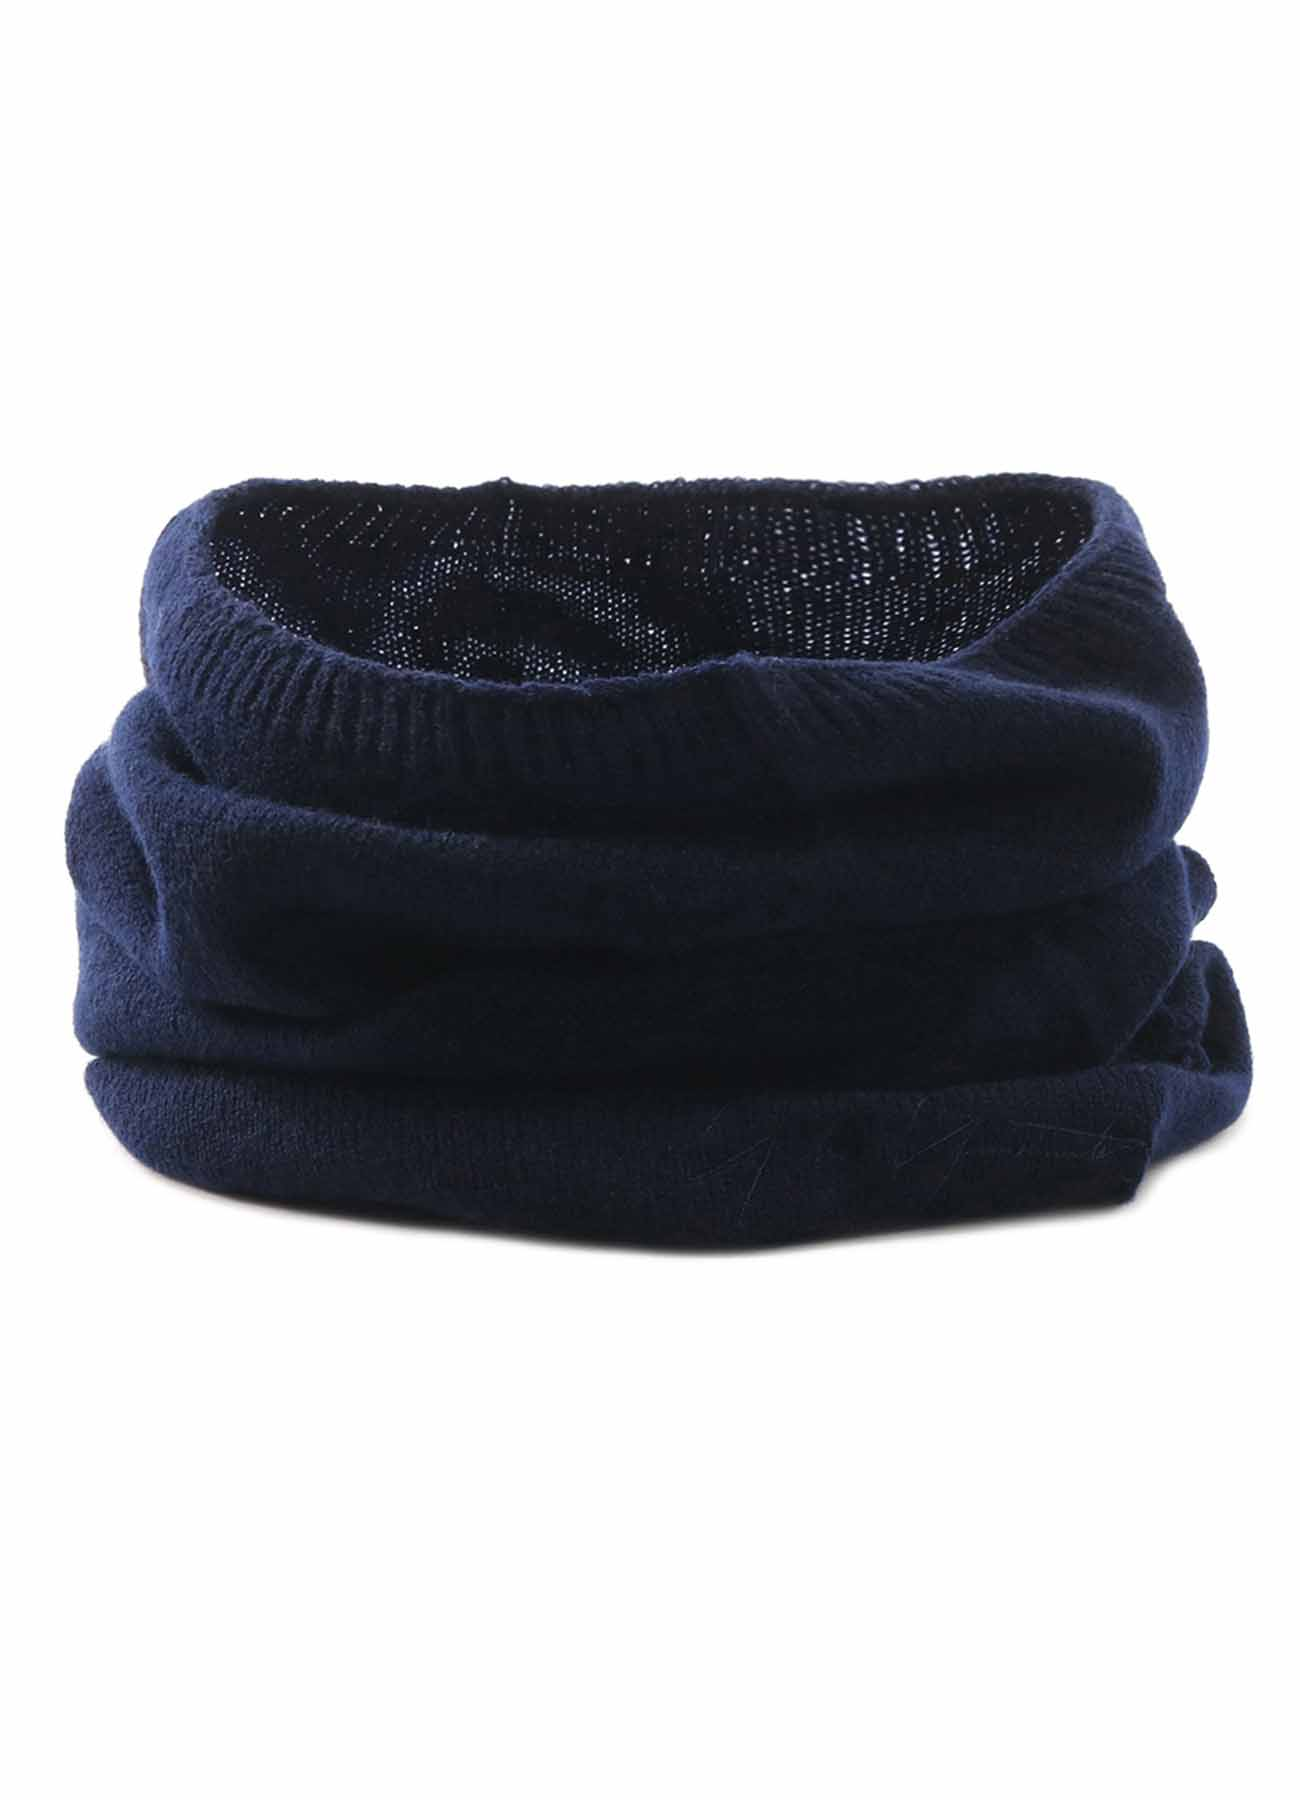 SOFT WOOL WHOLE GARMENT NECK WARMER